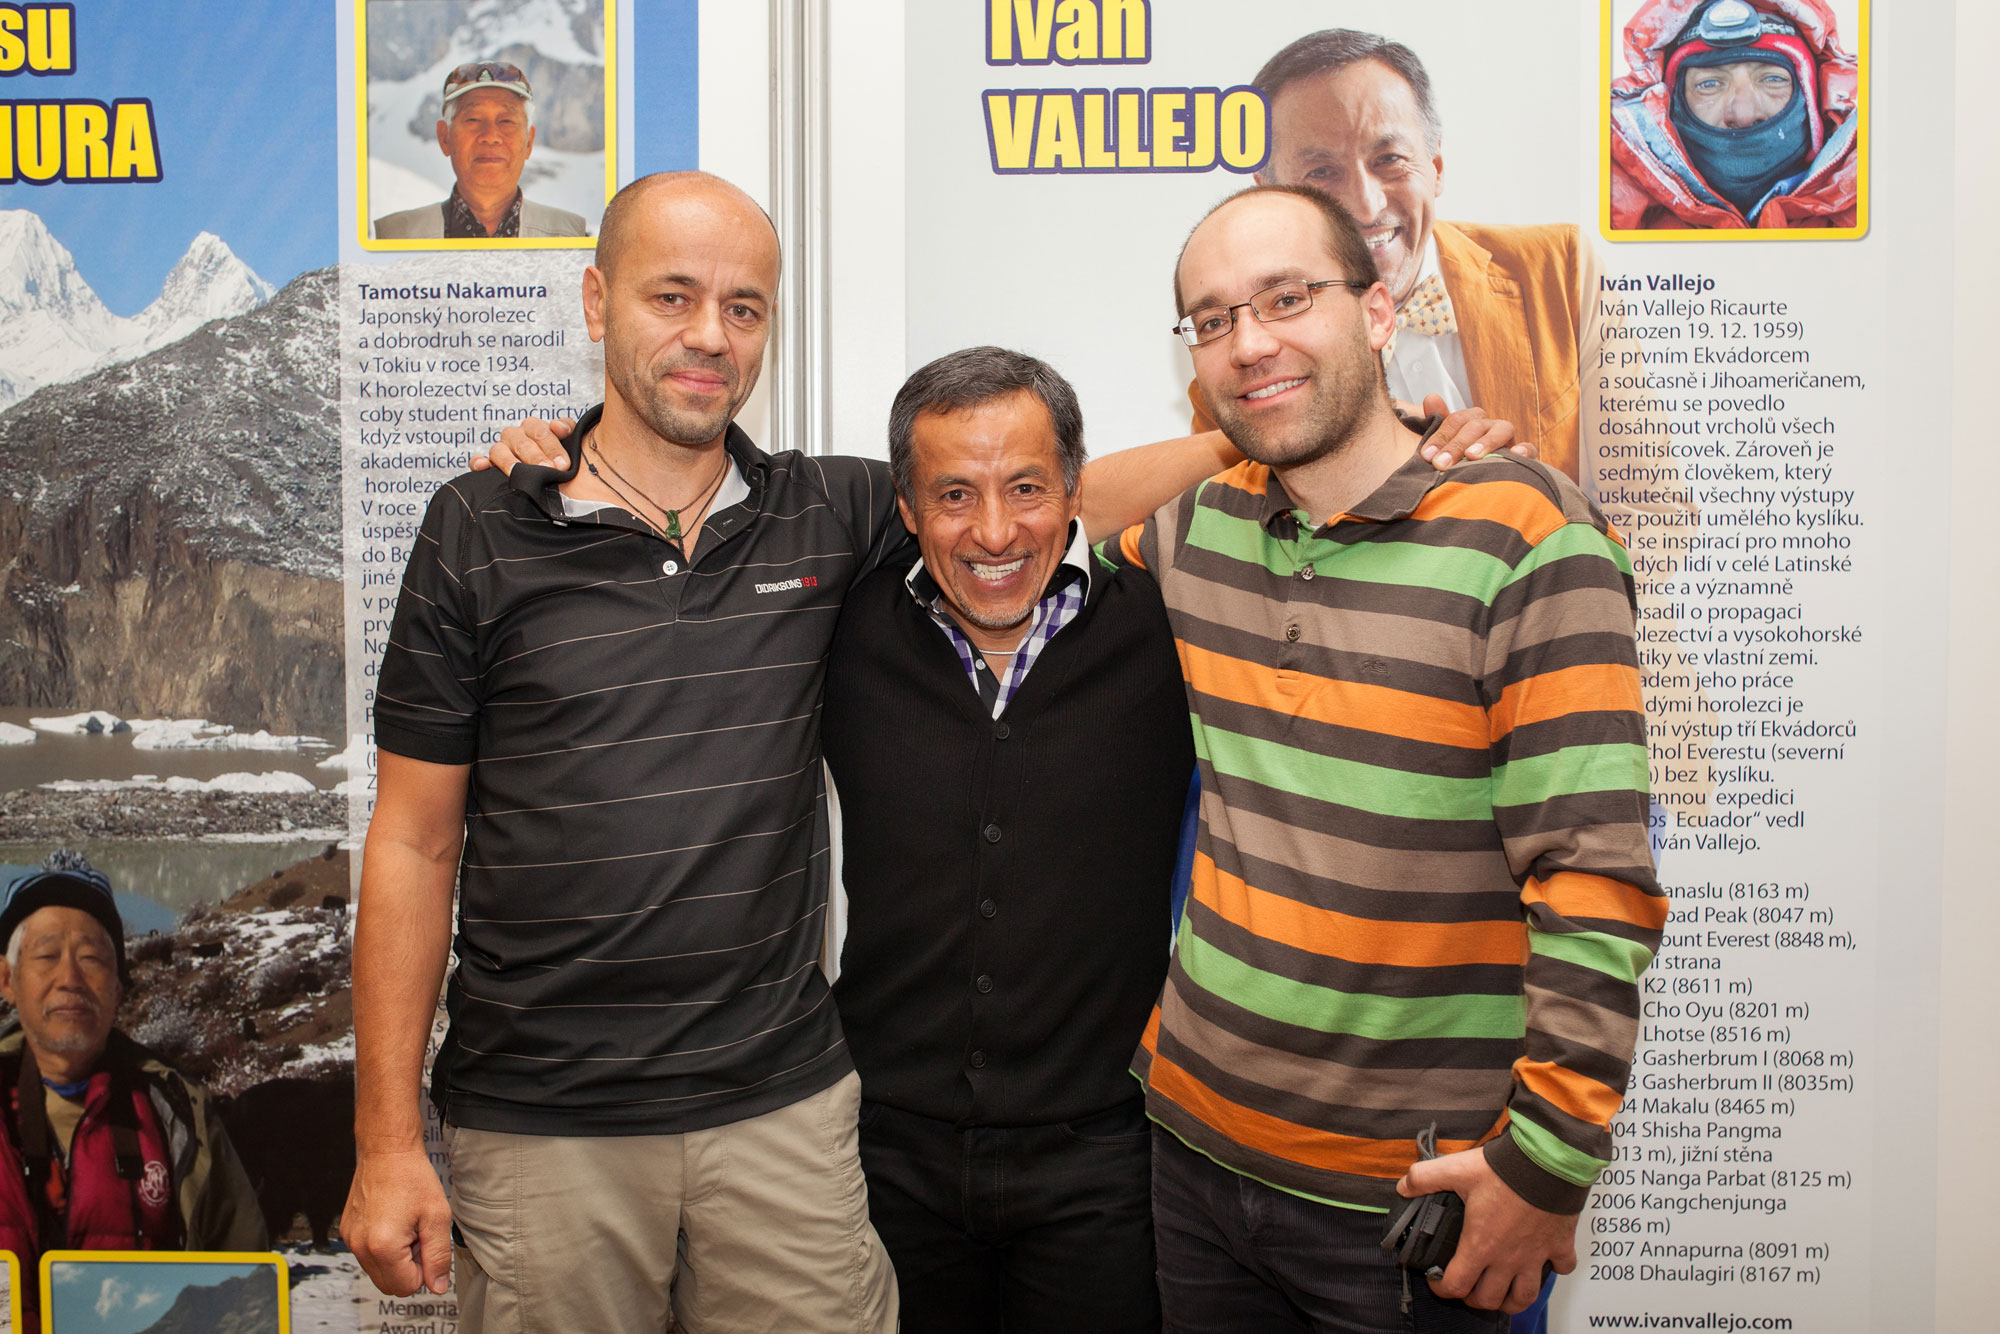 Iván Vallejo, Radek Jaroš and author of interview, Festival of alpinism in Prague (2013), Photo: Jan Holomek | f56.cz